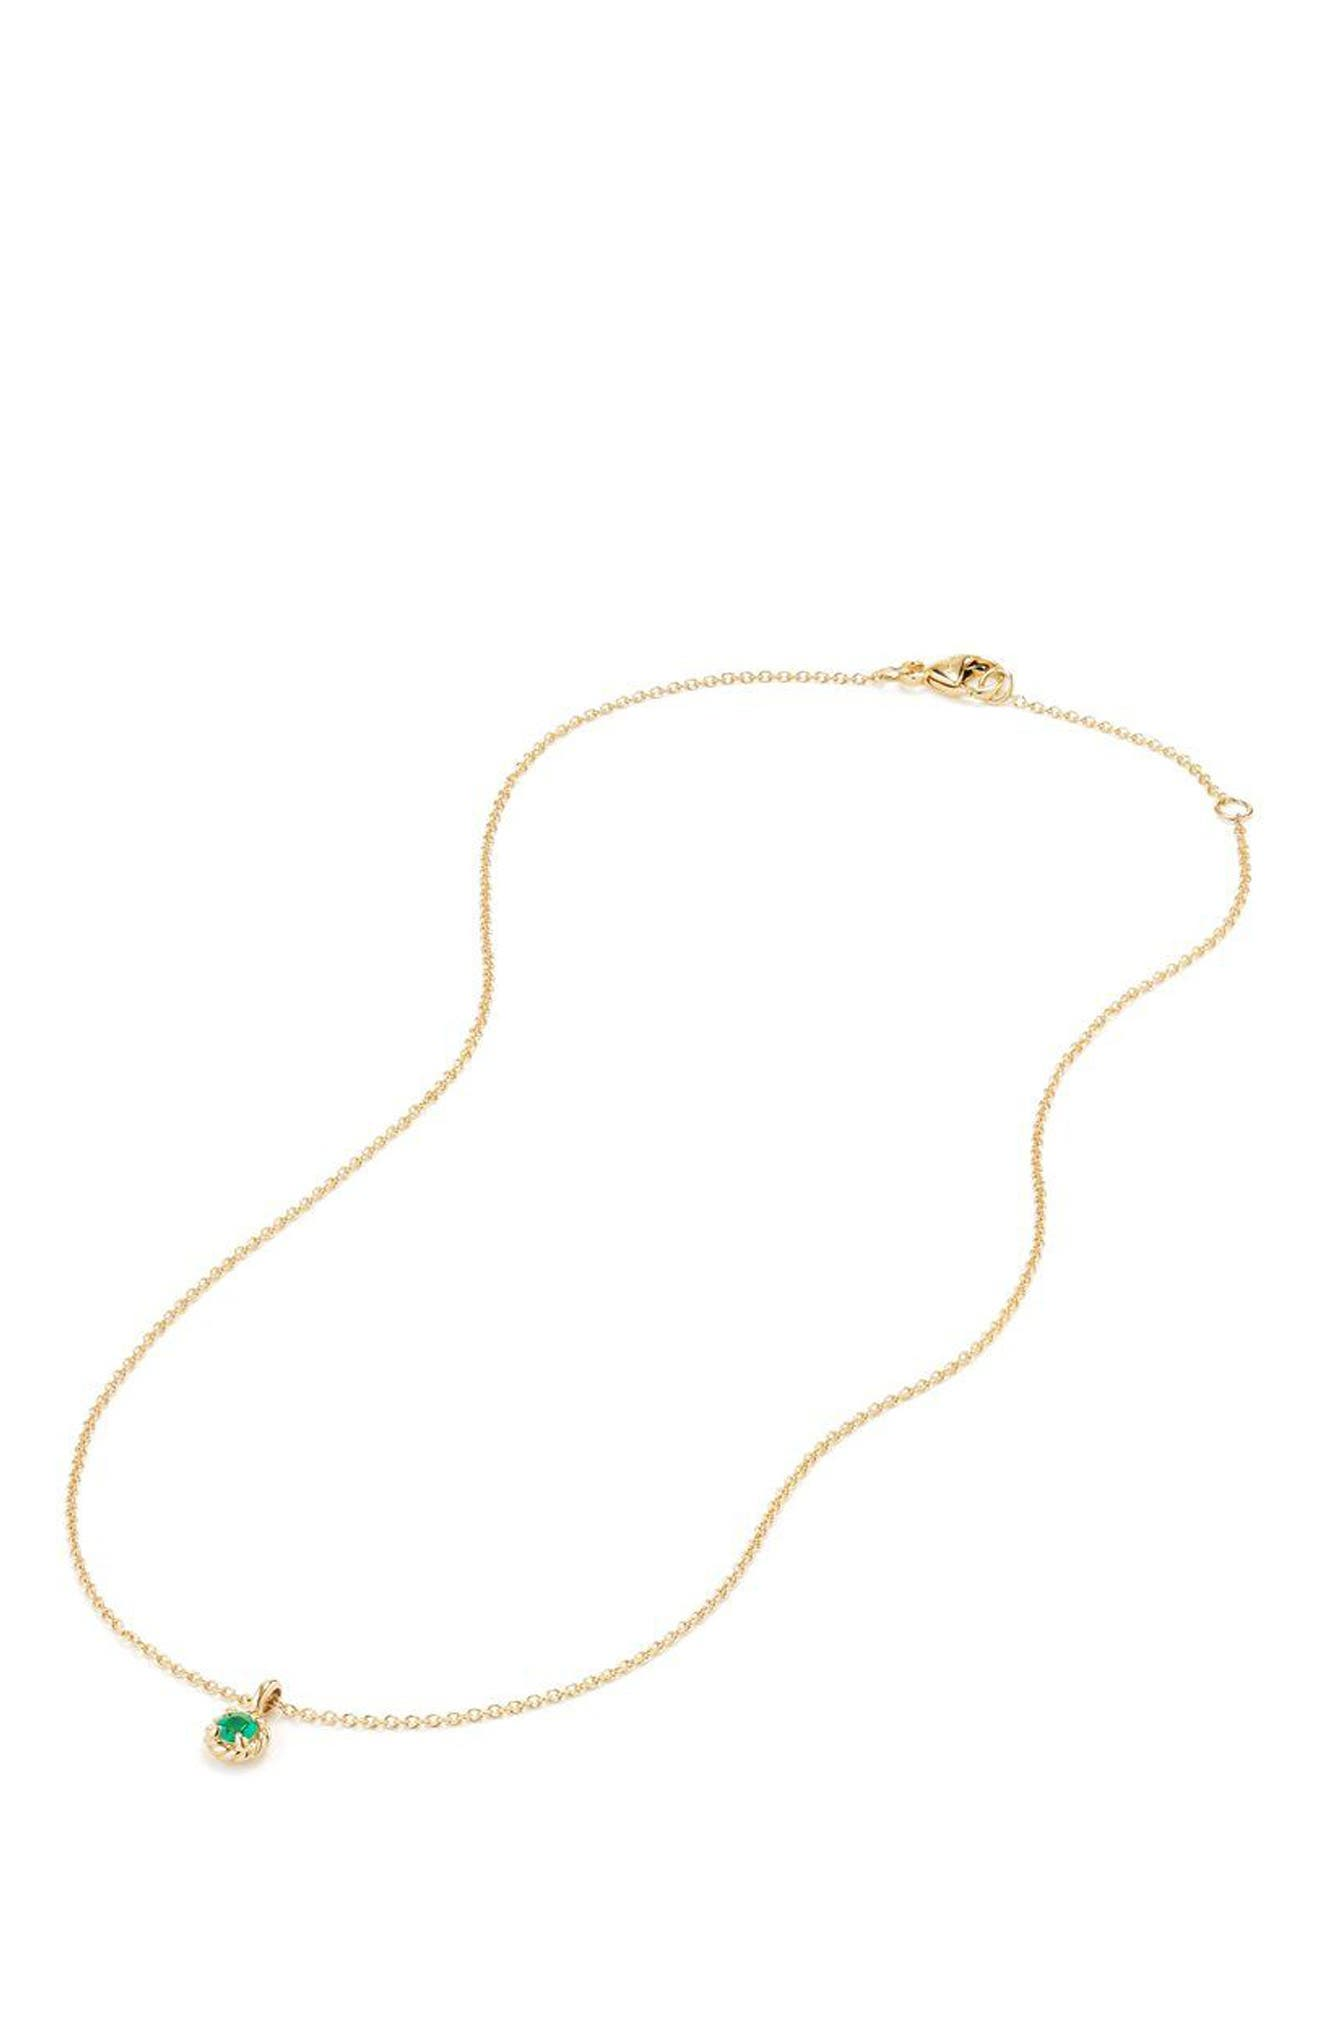 Cable Collectibles<sup>®</sup> Kids' Birthstone Necklace in 18K Gold,                             Alternate thumbnail 2, color,                             Emerald